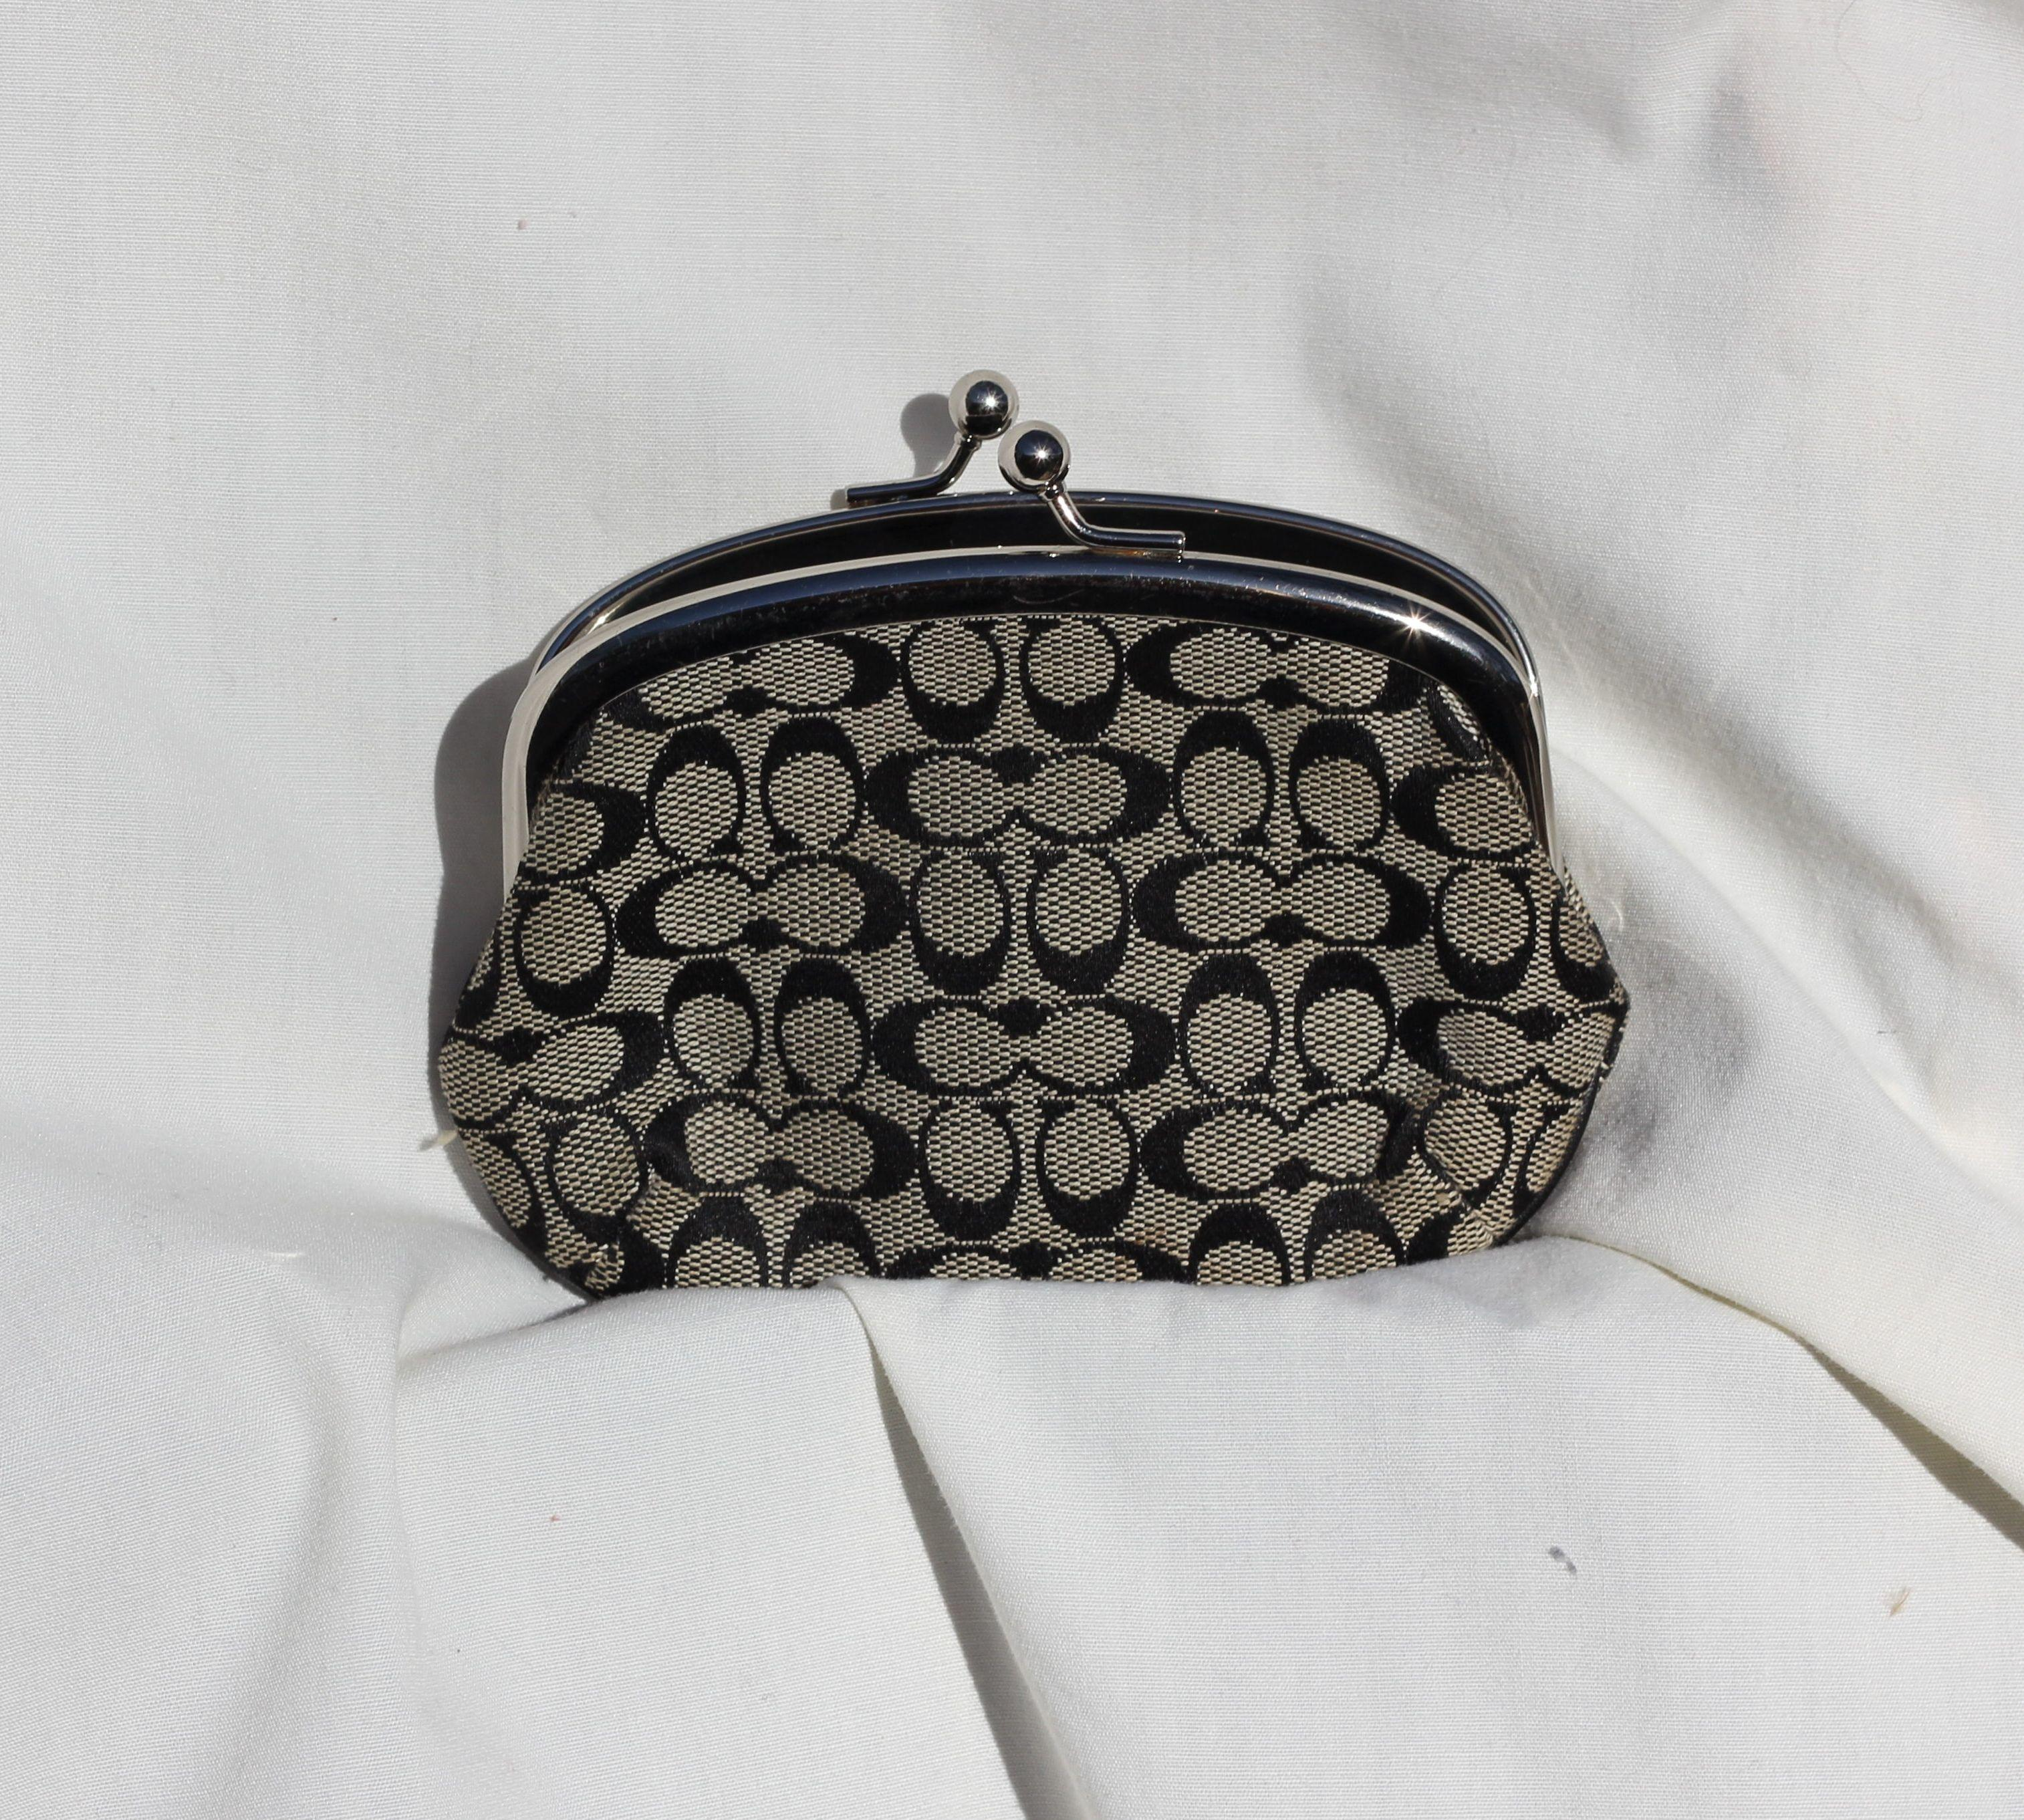 Le Meilleur Coach Black And Grey Wallet Coach Accessories Tradesy Ce Mois Ci